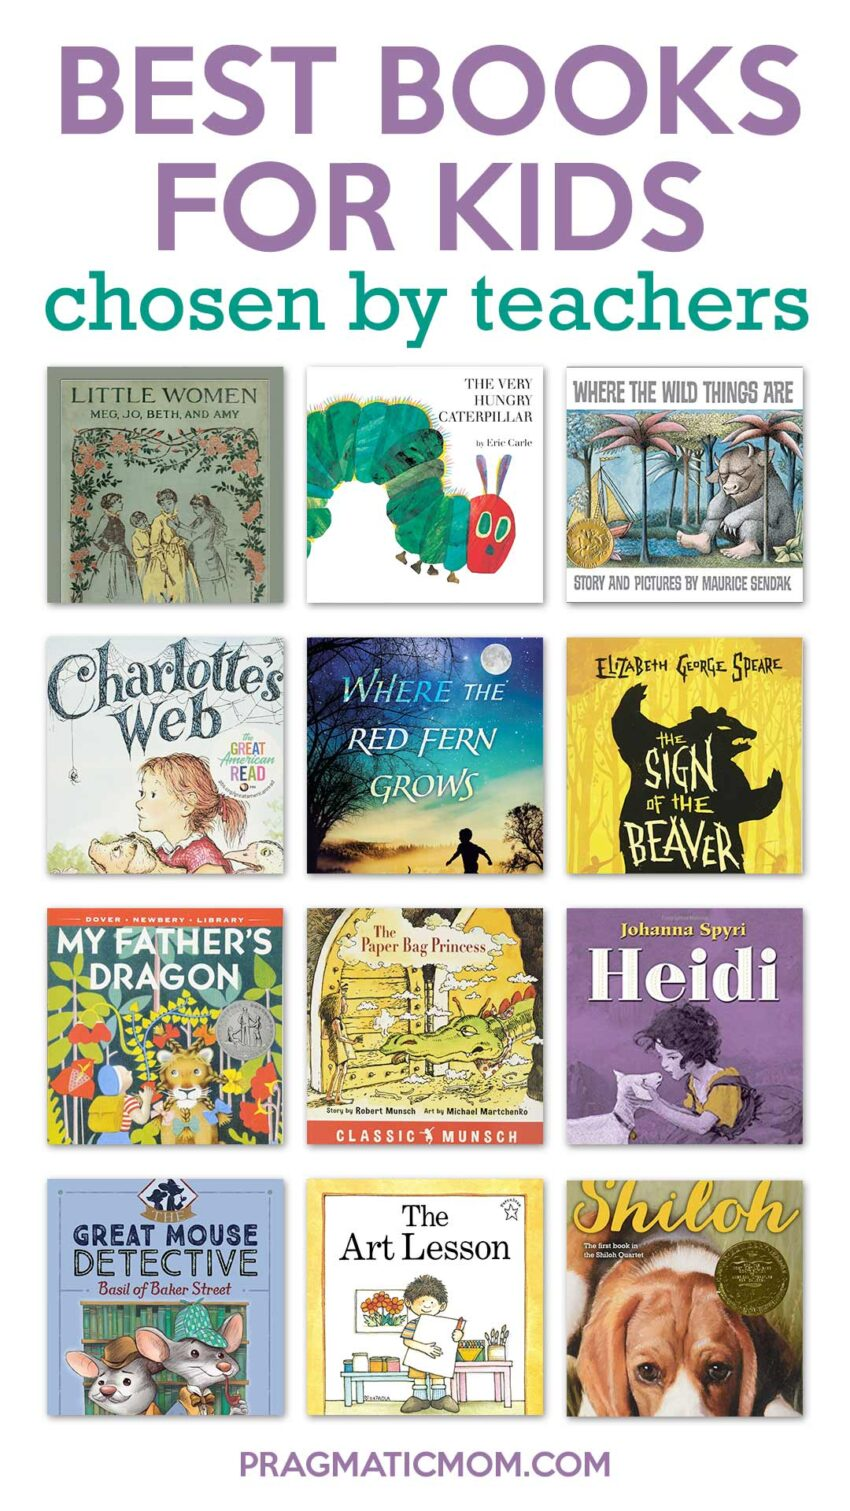 Best Books for Kids Selected by Teachers